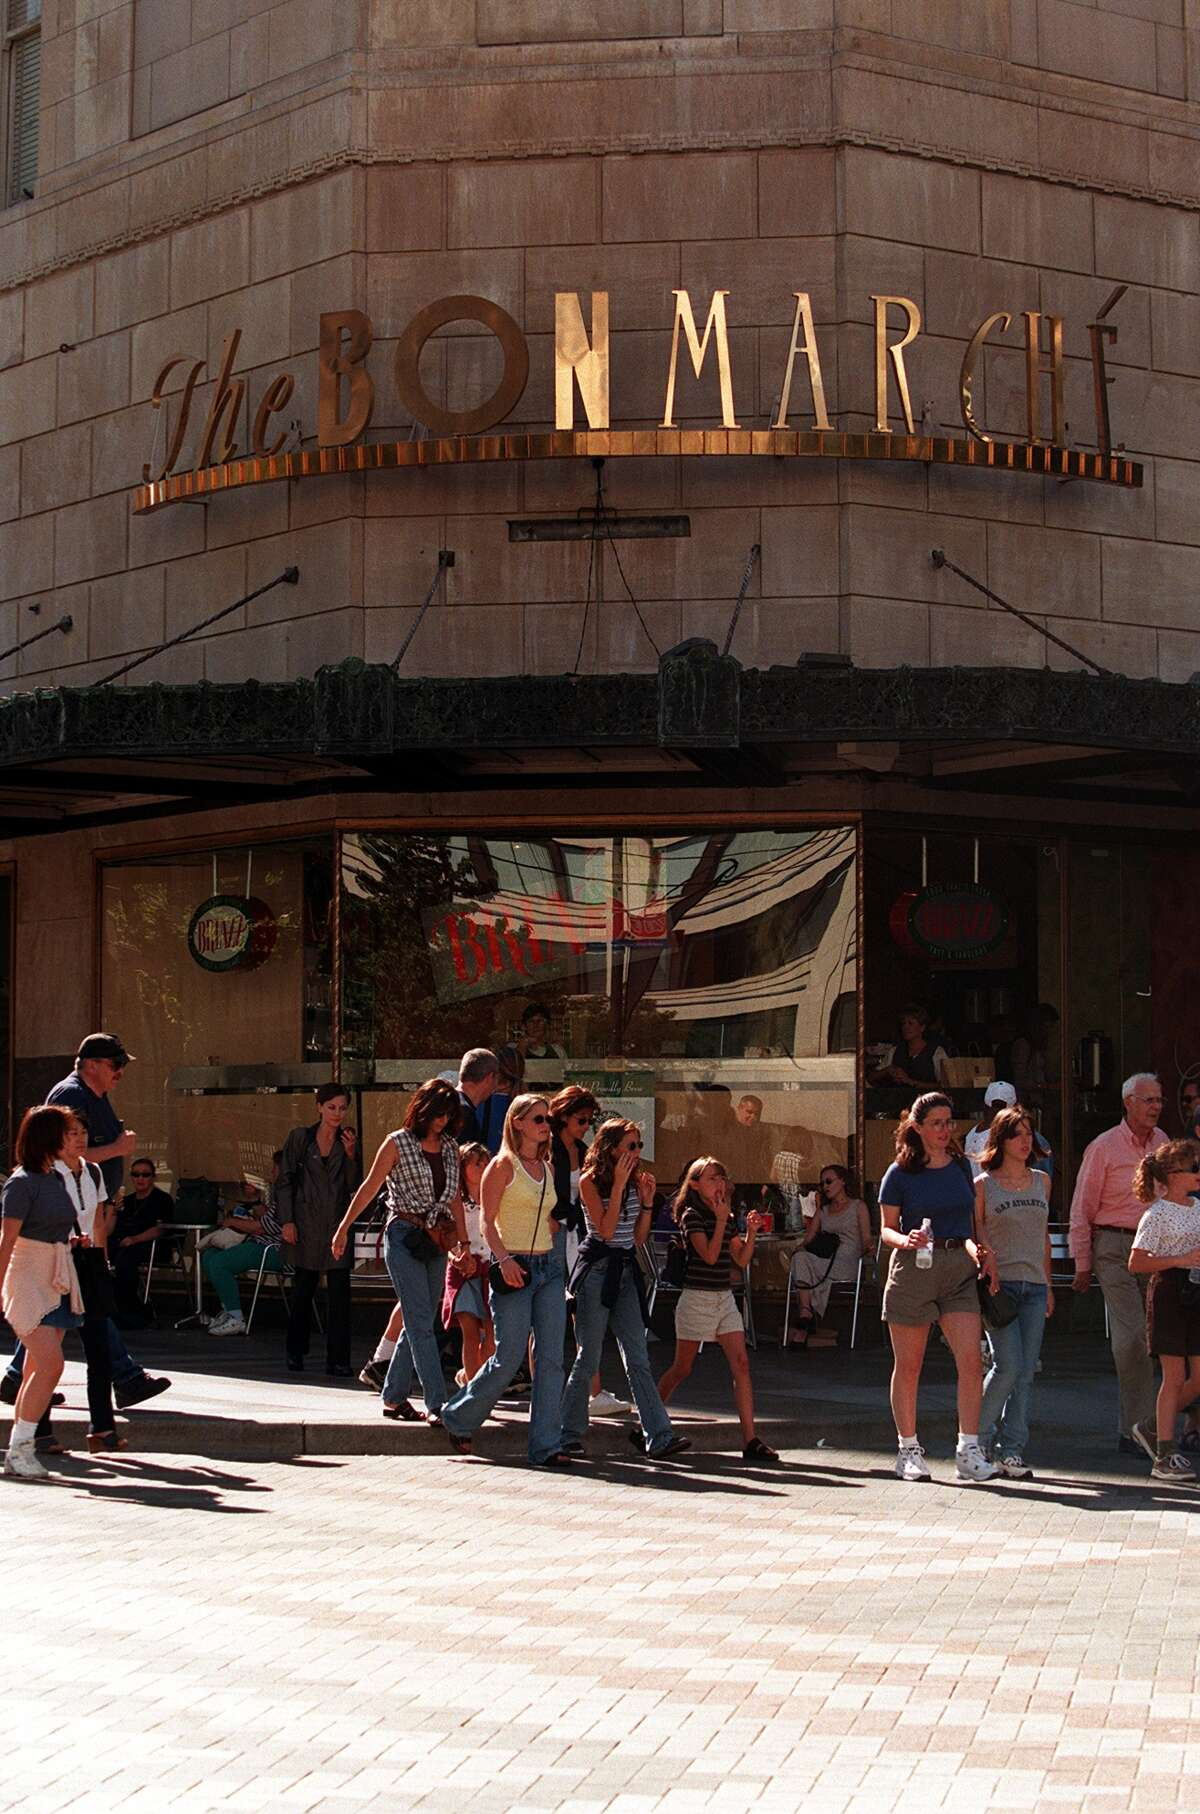 For years, the Bon Marche was synonymous with downtown shopping. It opened in Belltown in 1890 as a dry goods store and became Macy's in 2005.